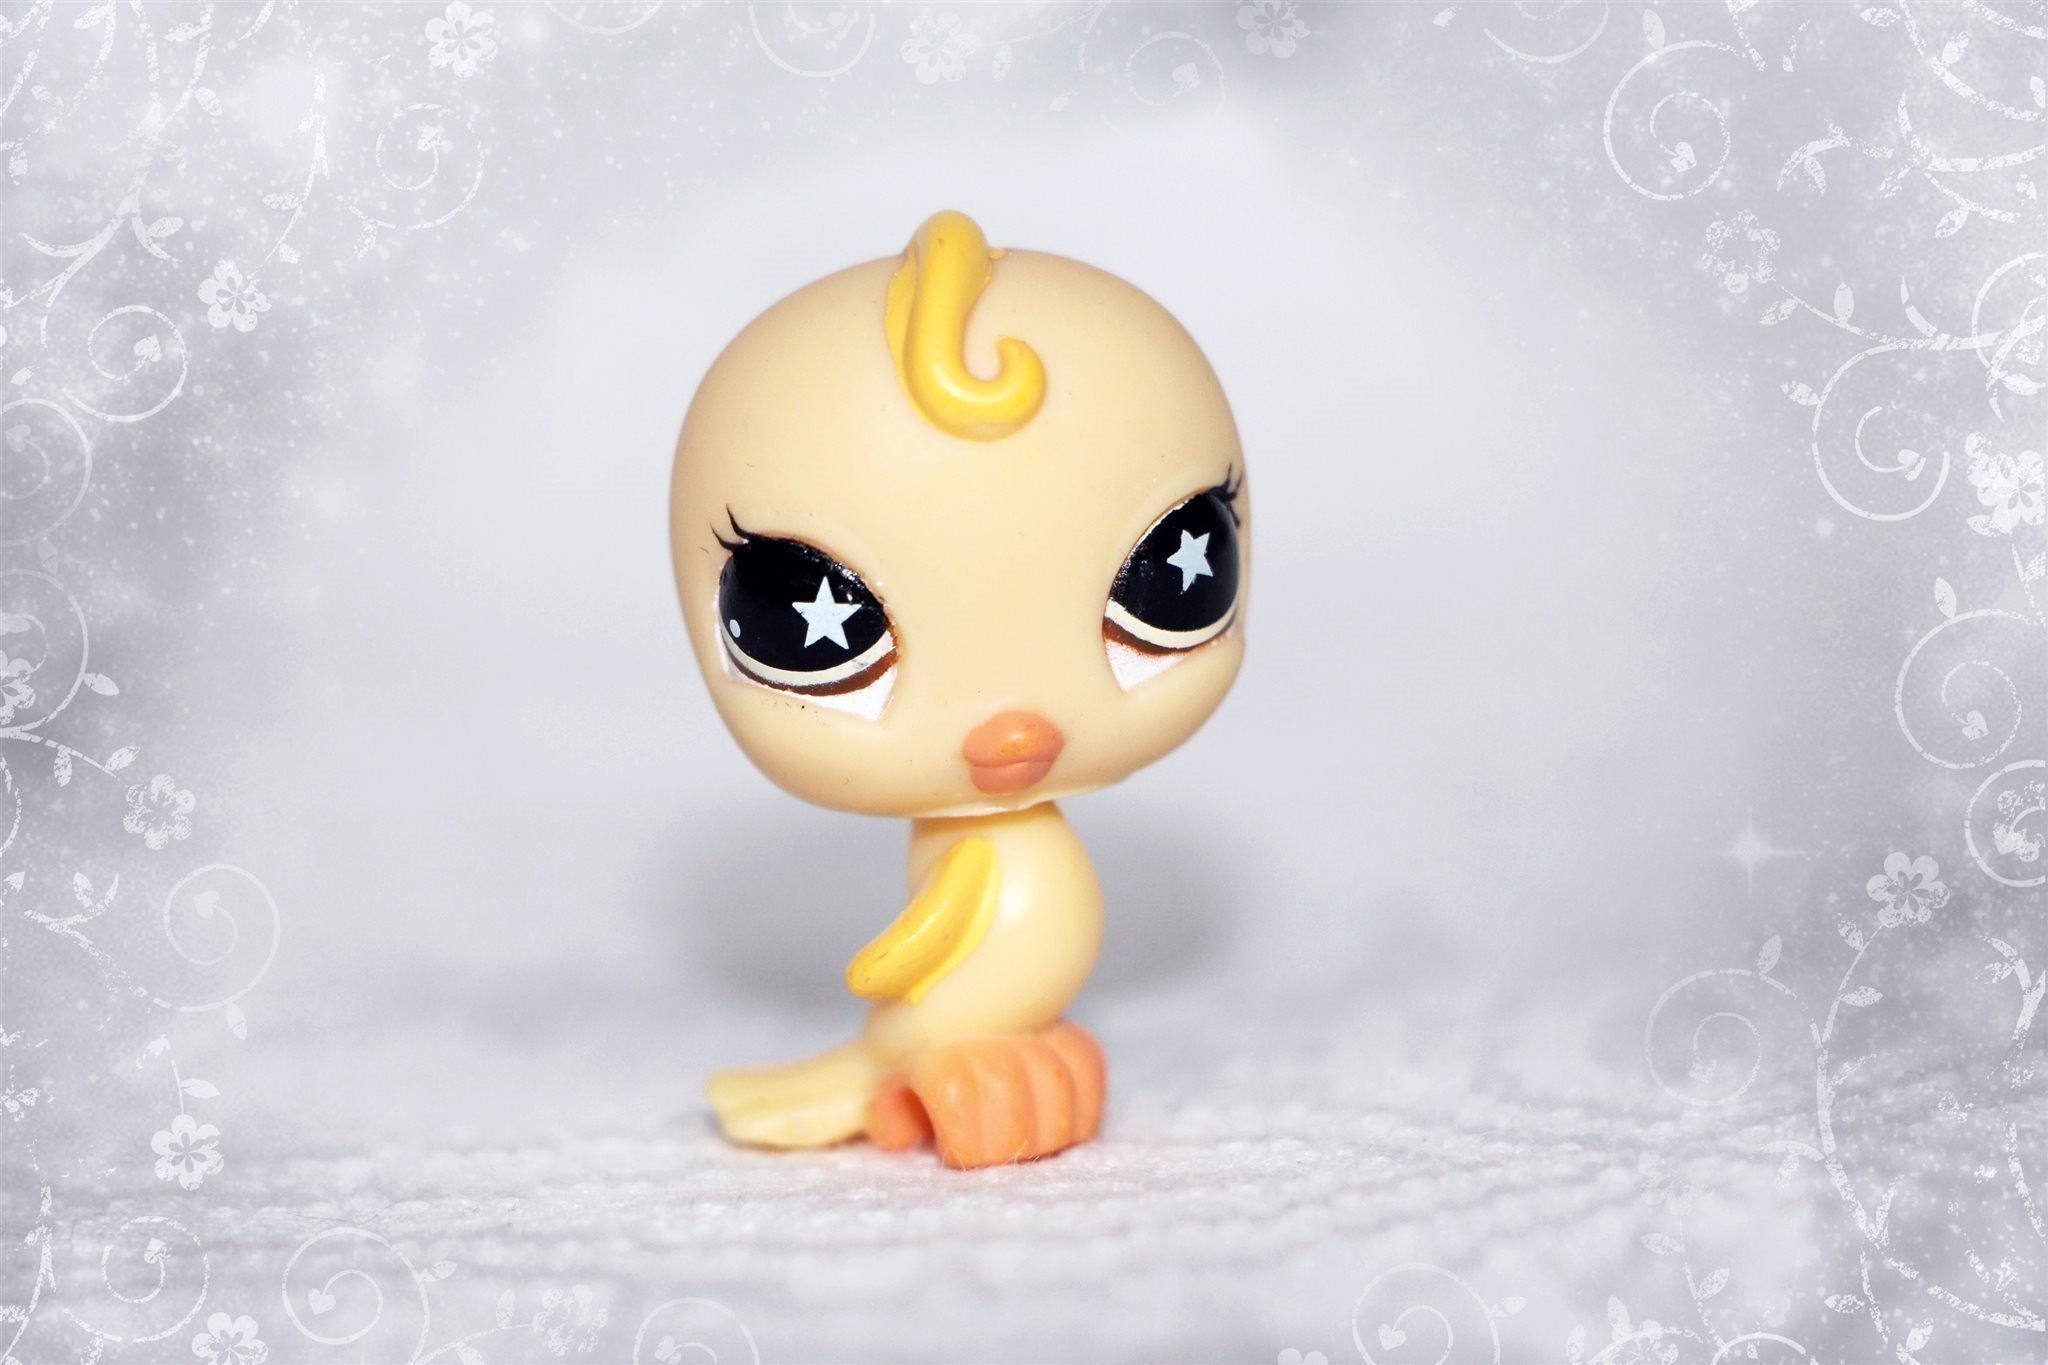 Littlest Pet Shop - Petshop, Petshops, Pet shops, Lps